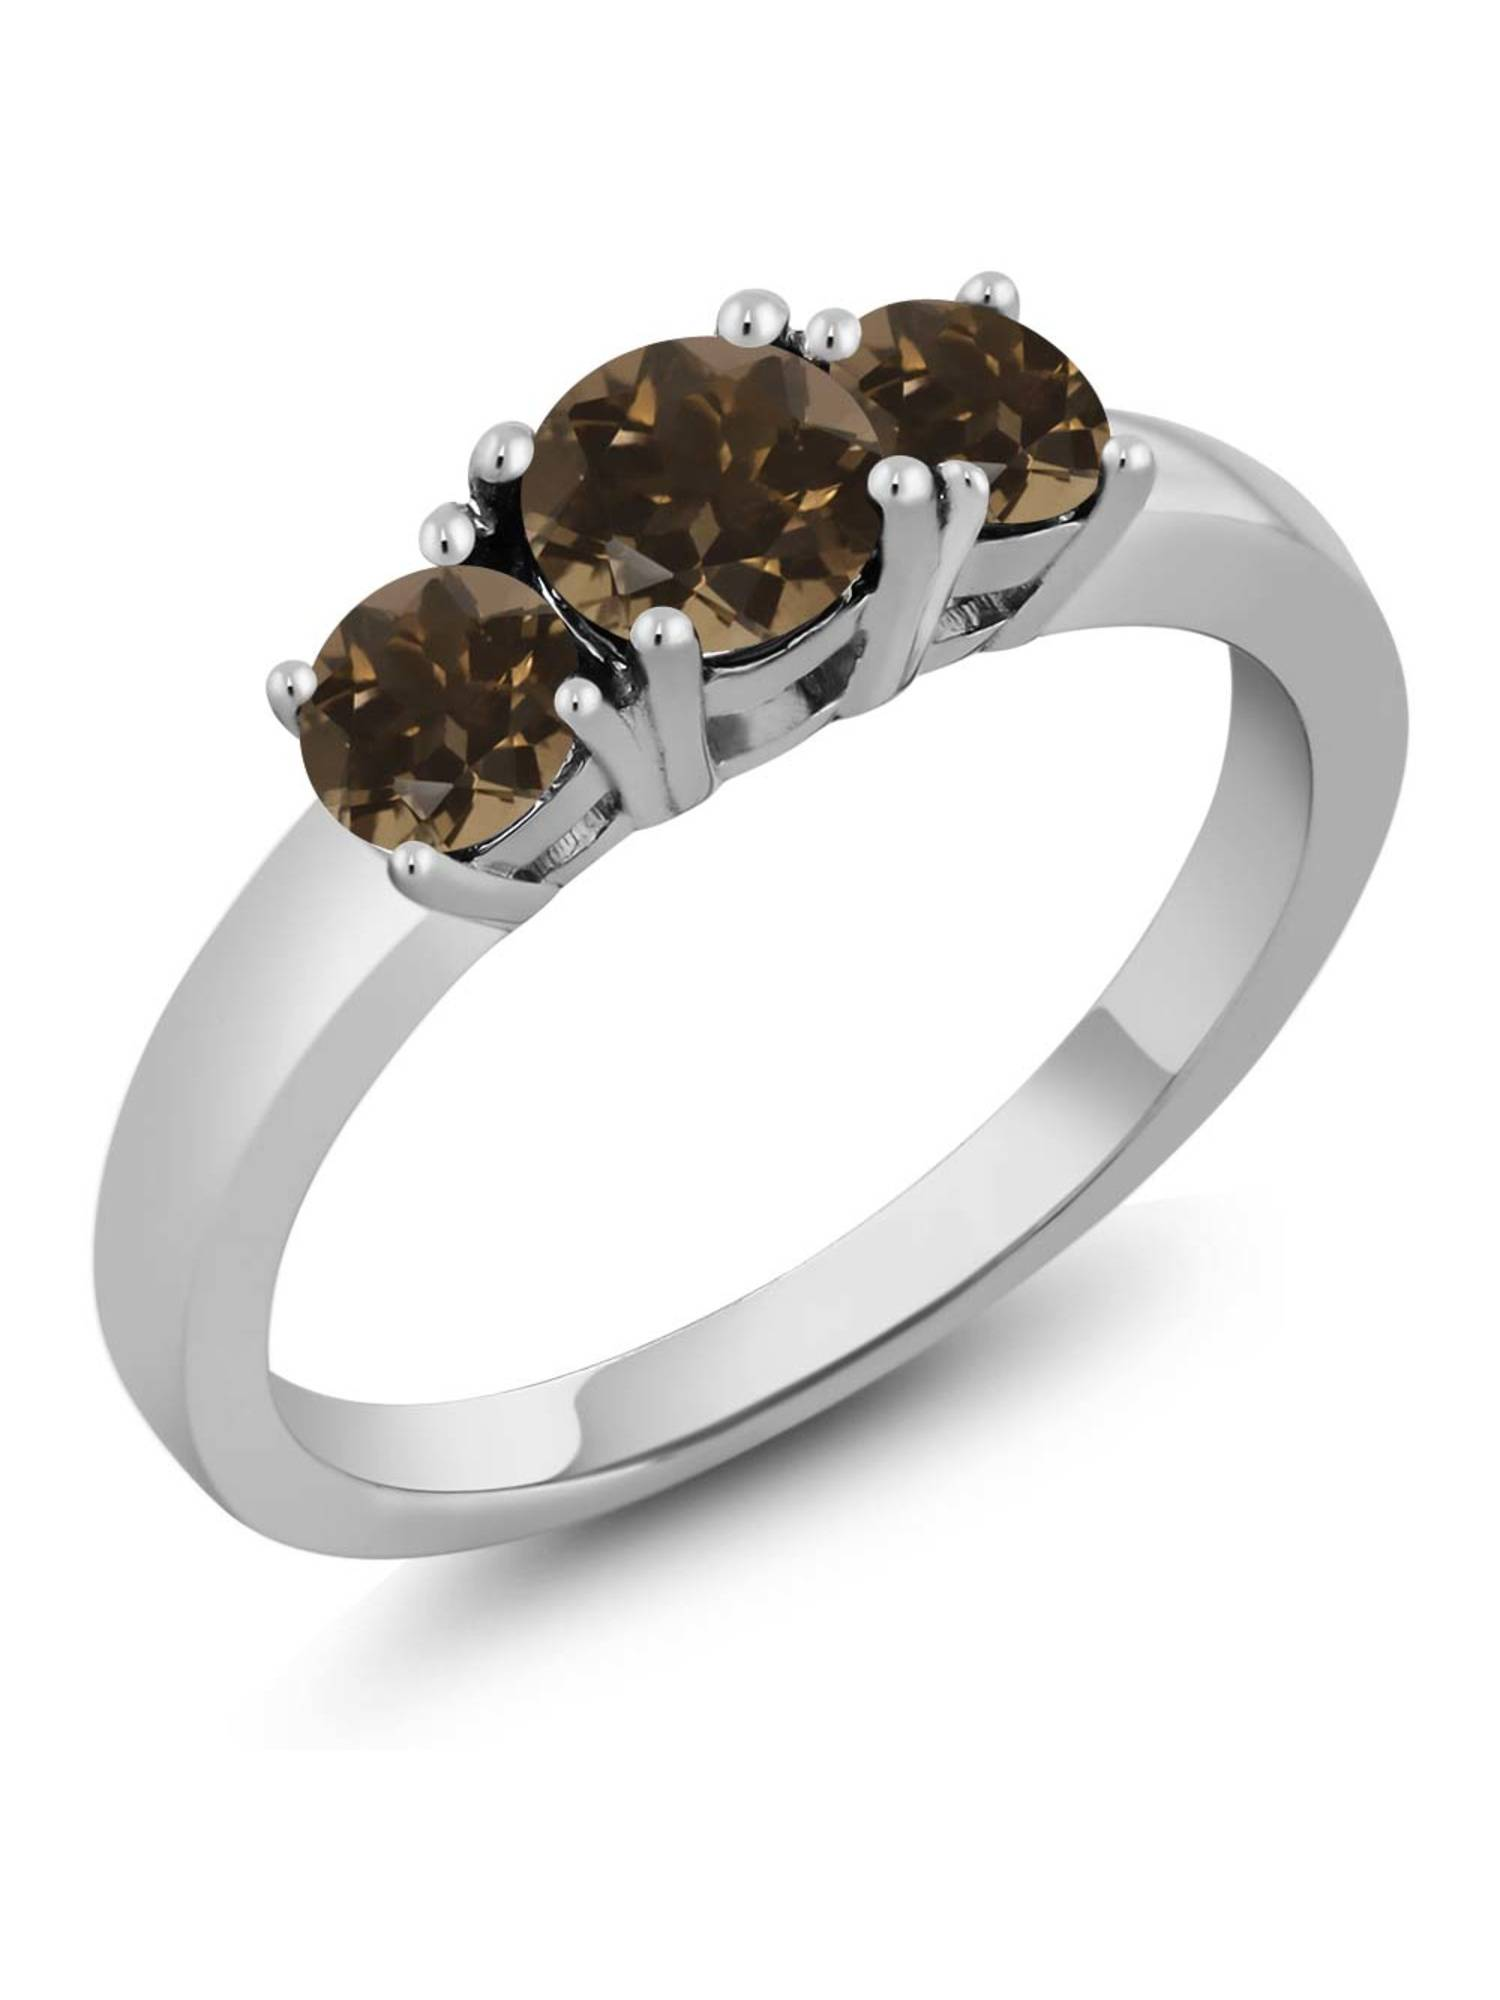 0.98 Ct Round Brown Smoky Quartz 925 Sterling Silver Ring